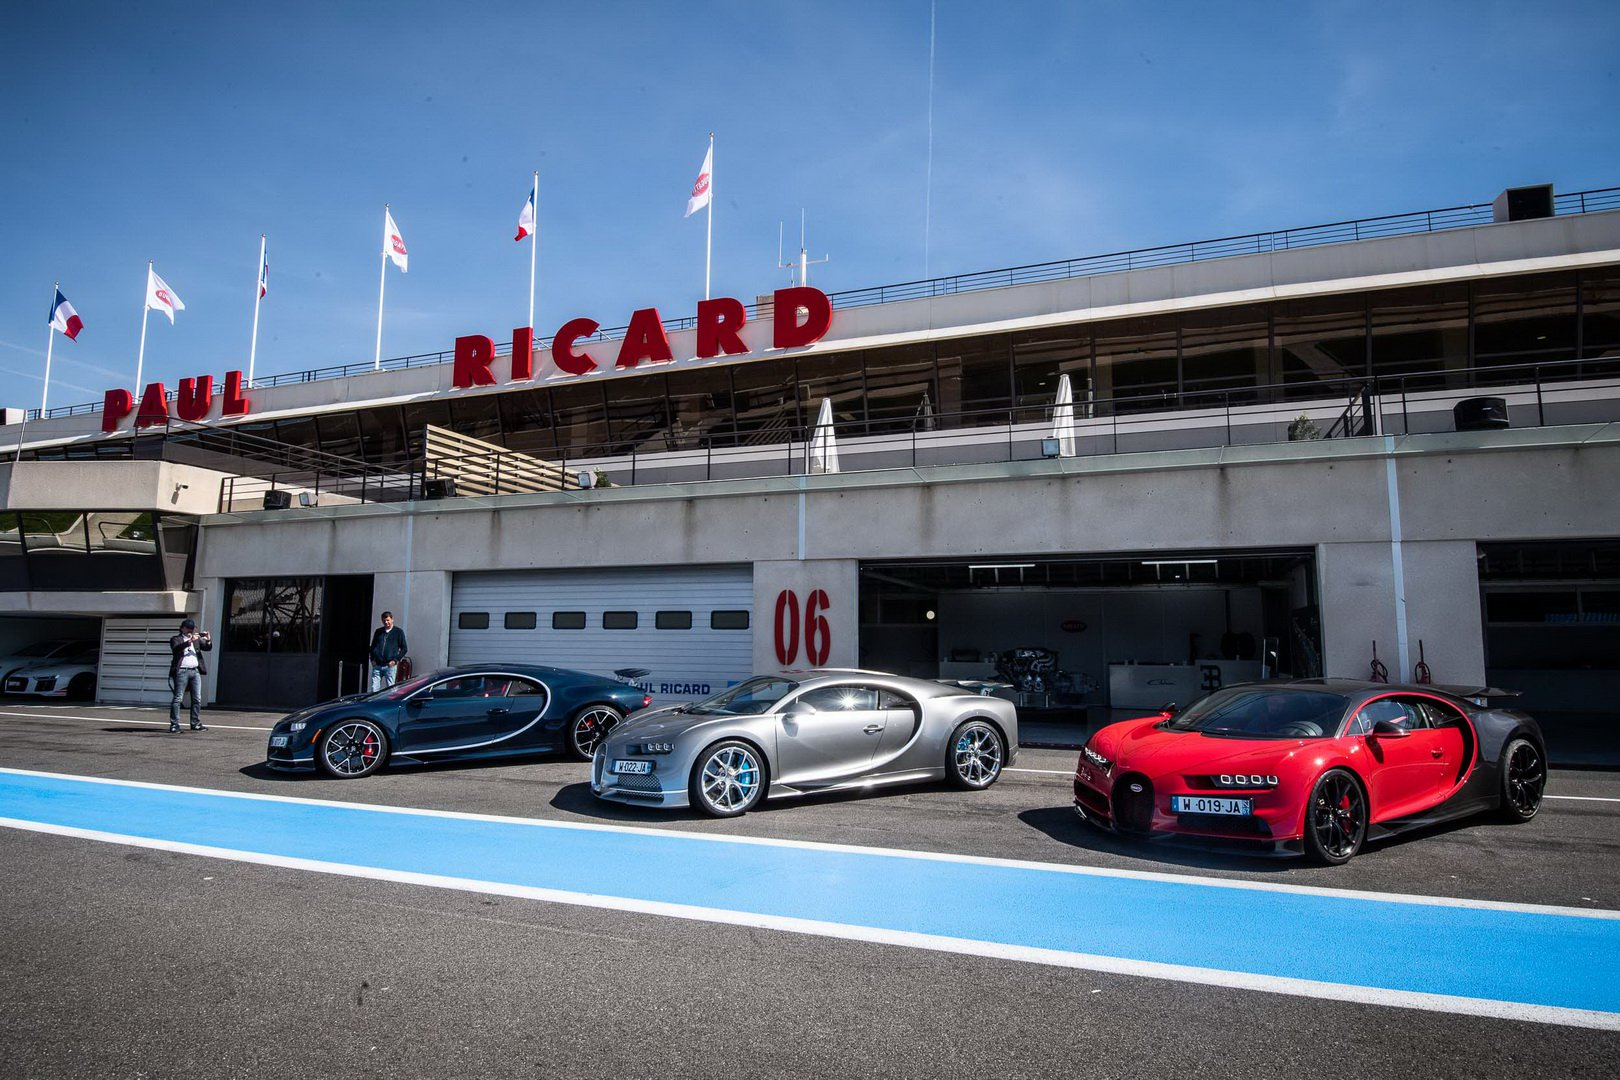 Bugatti-Chiron-and-Chiron-Sport-at-Paul-Ricard-Circuit-2